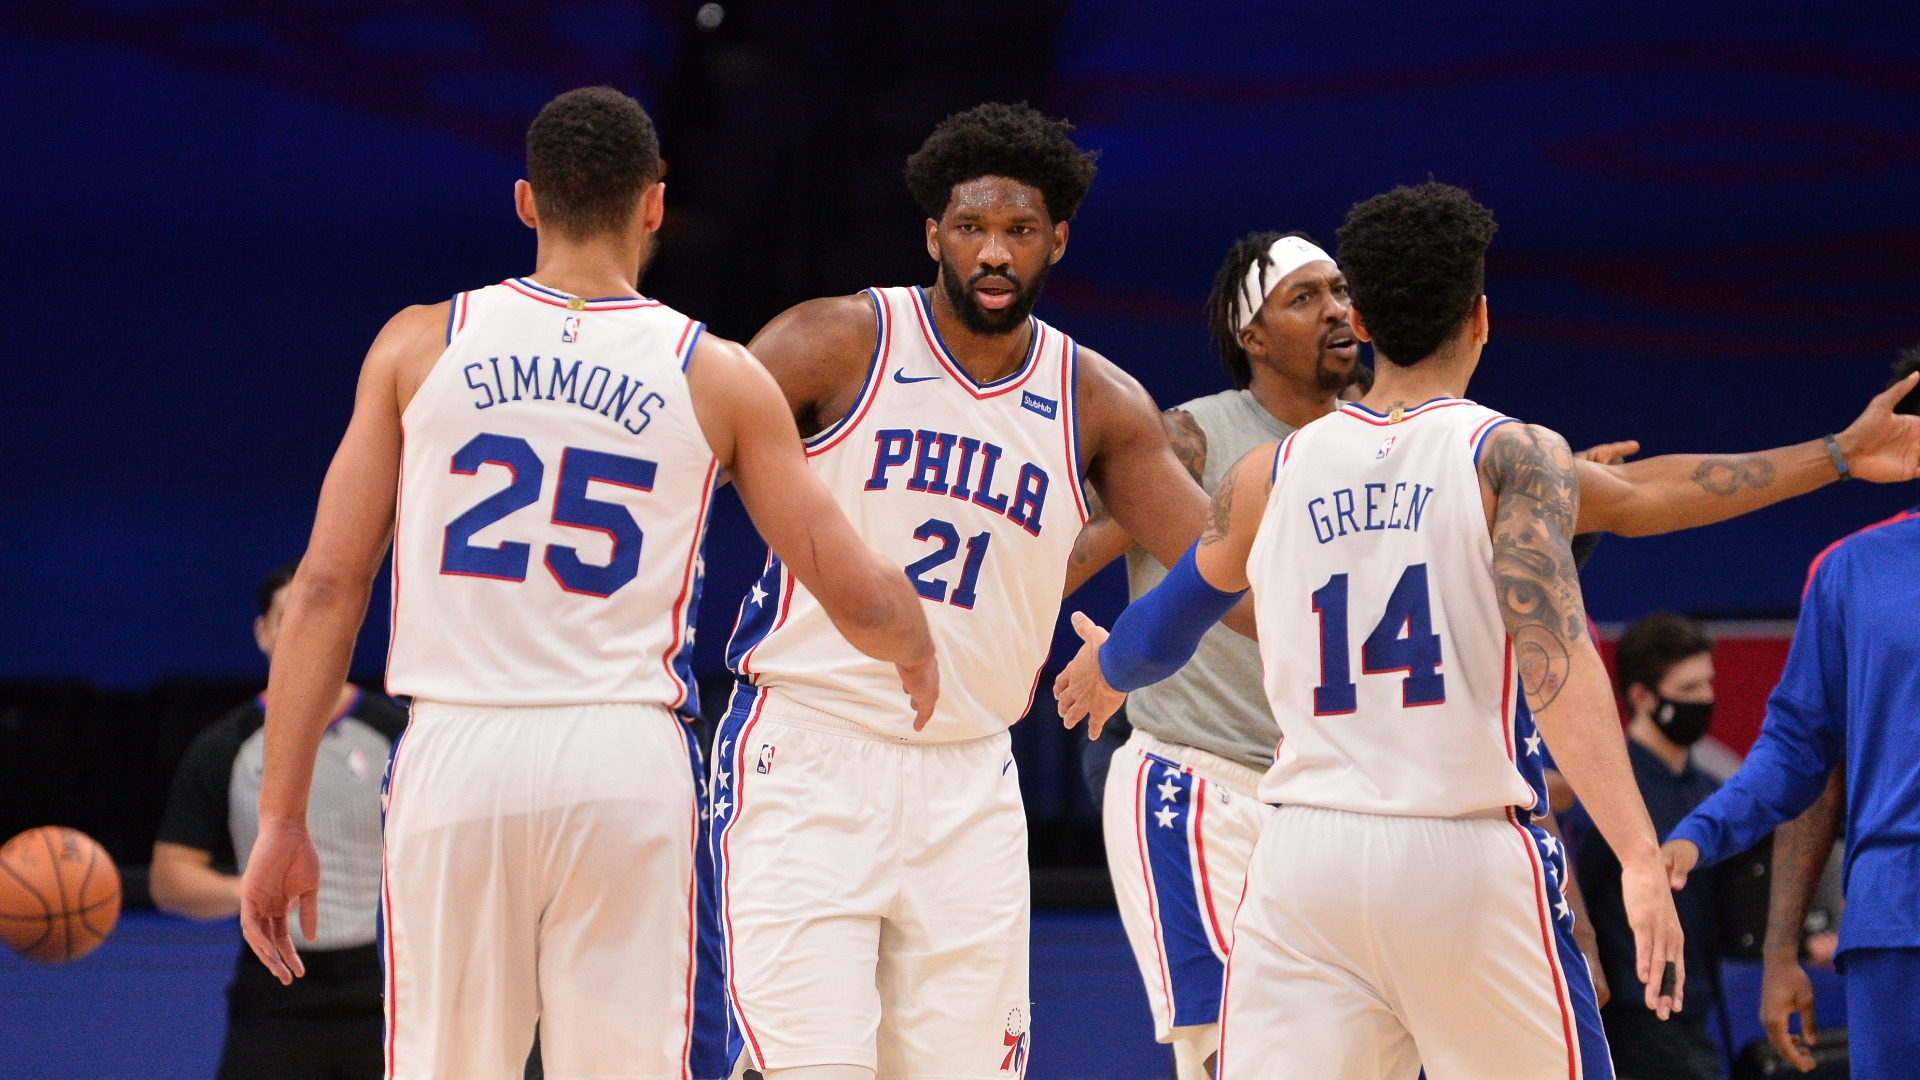 Simmons and Embiid could both be Defensive Player of the Year - Danny Green